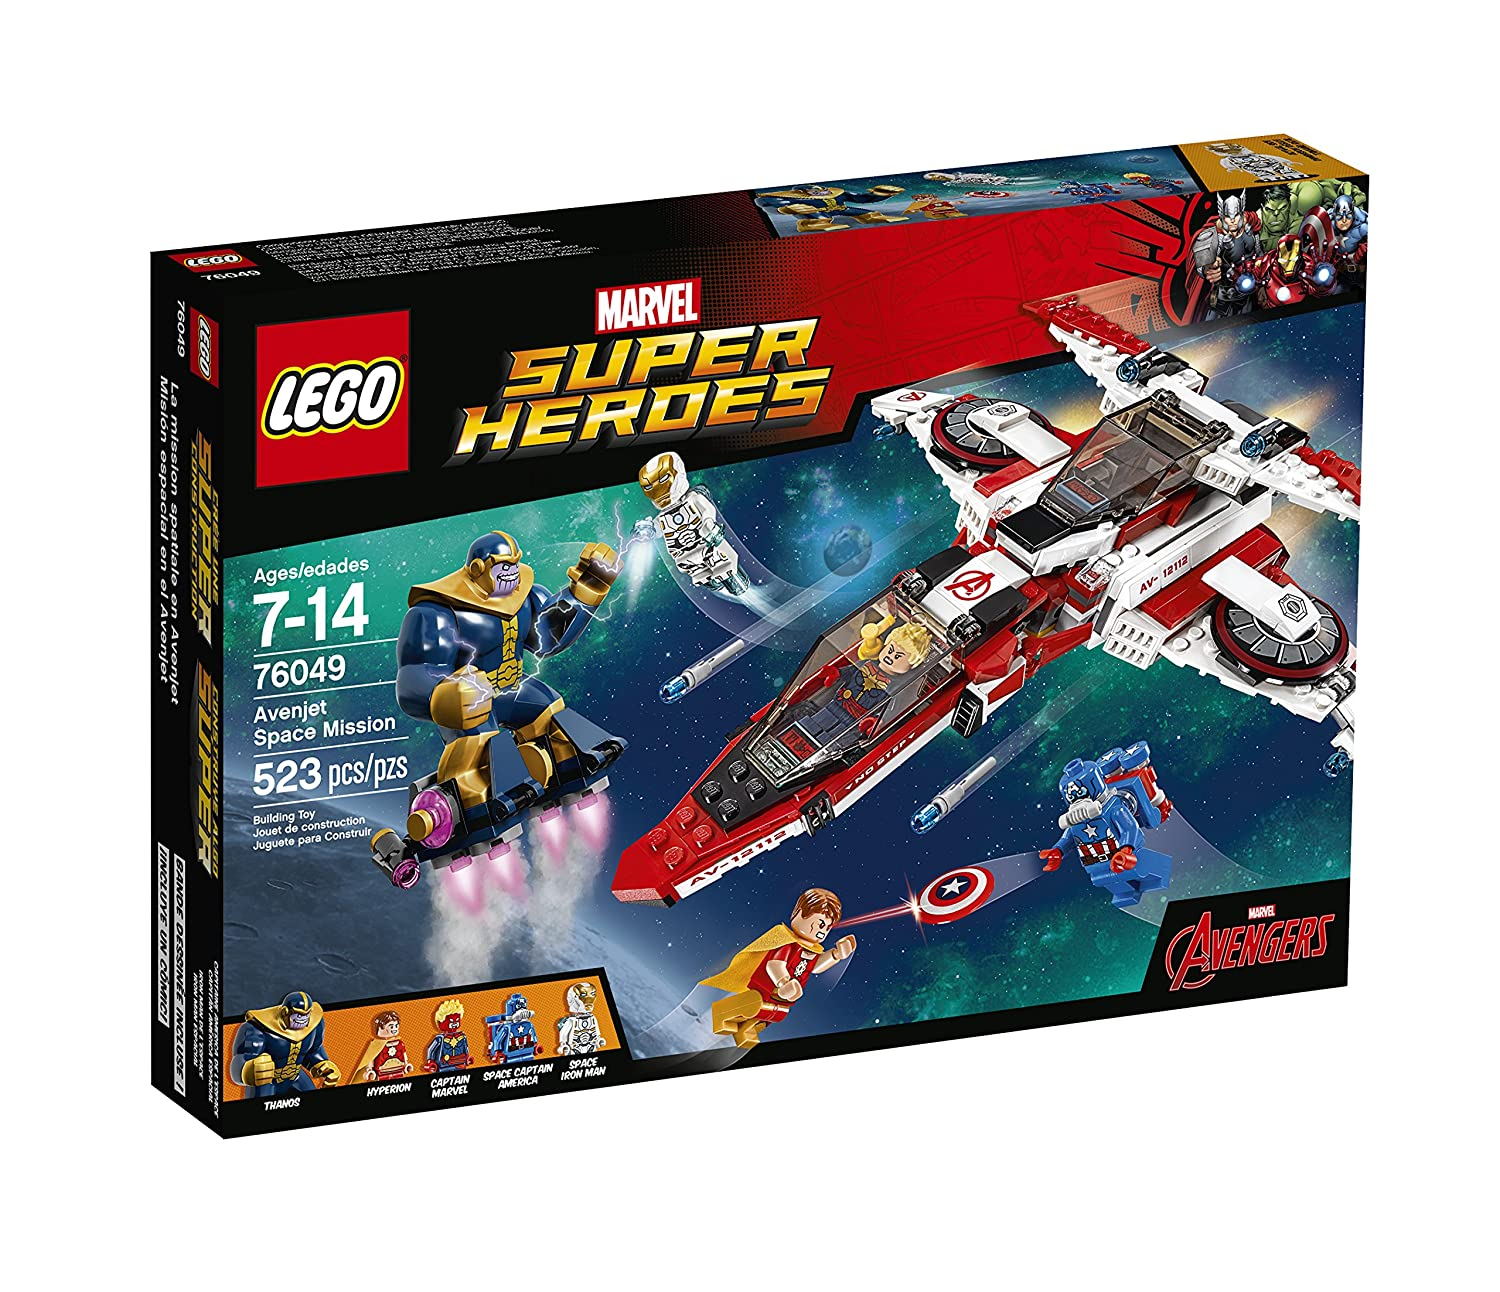 Top 7 Best LEGO Guardians of the Galaxy Sets Reviews in 2020 7